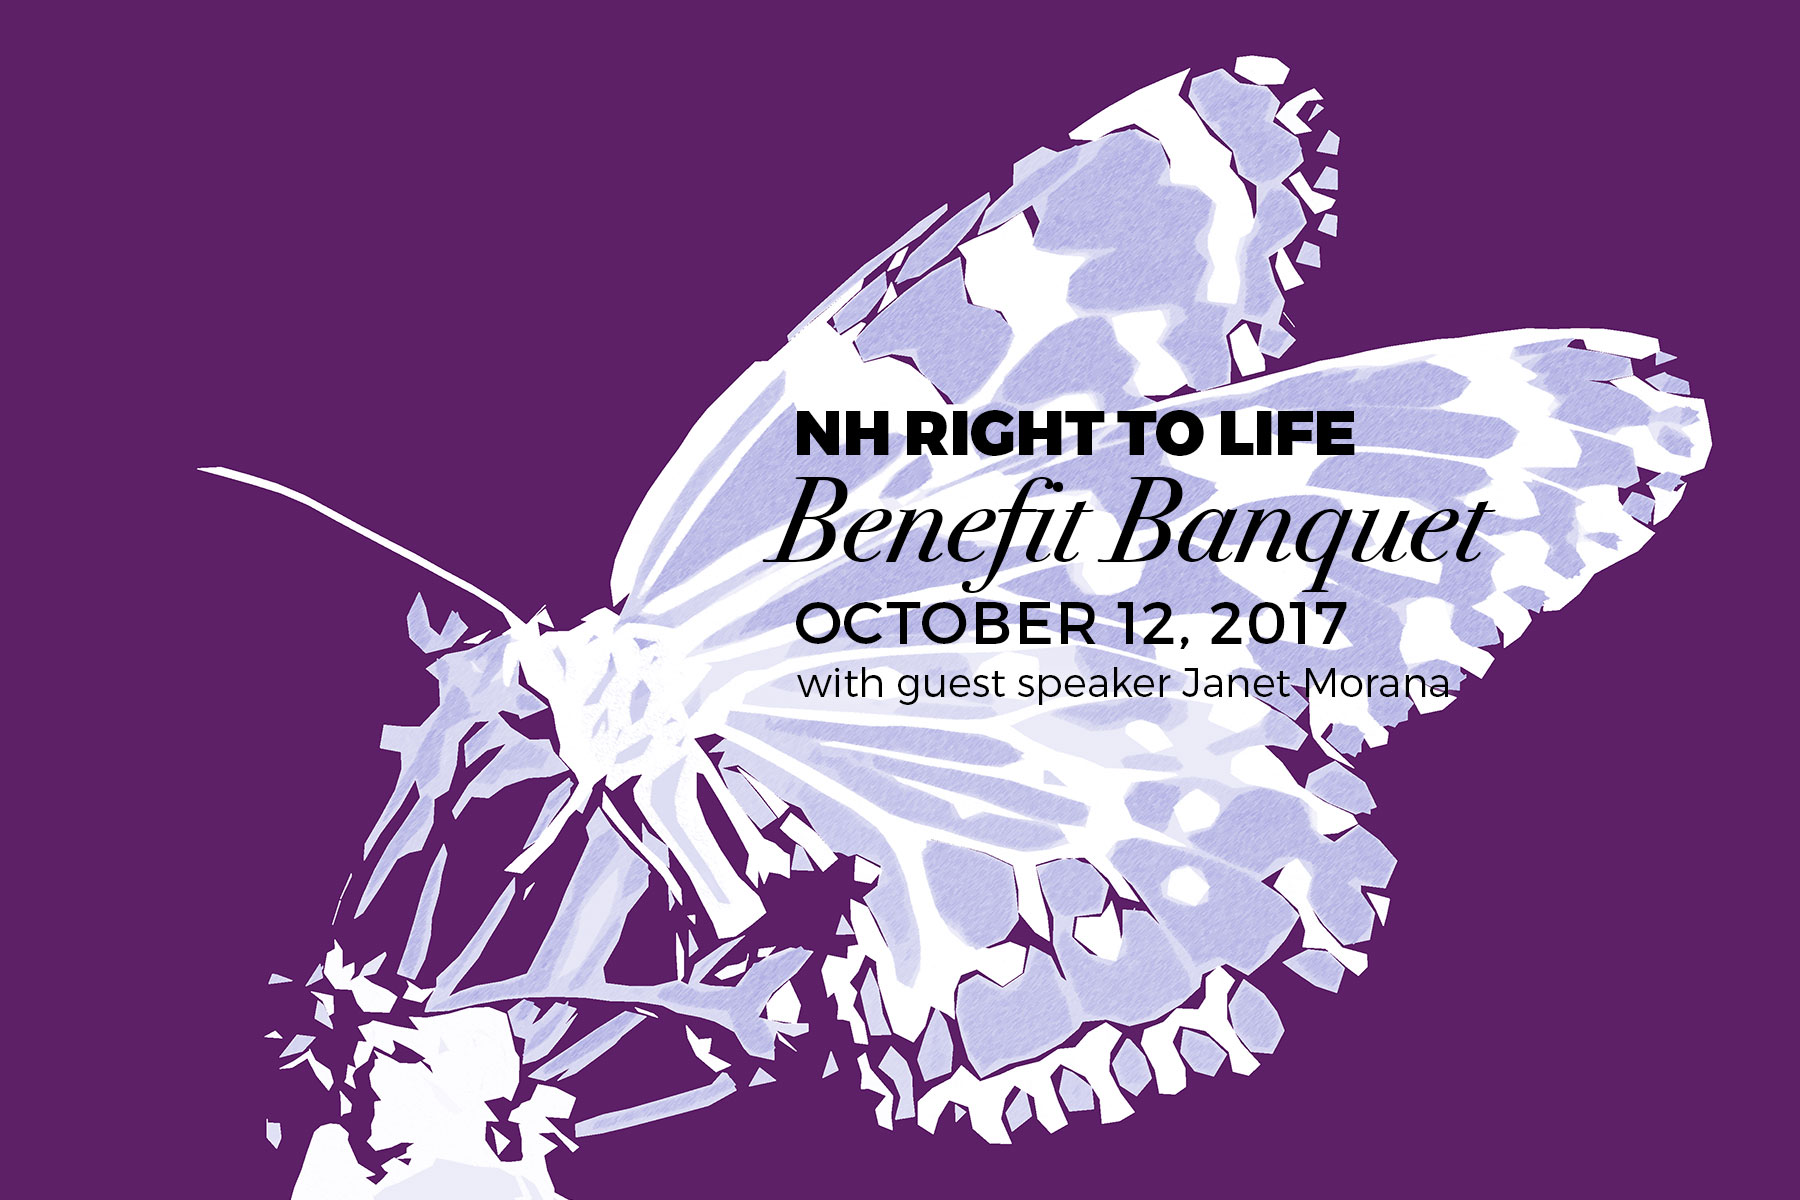 NHRTL Banquet 2017 – Save the date!